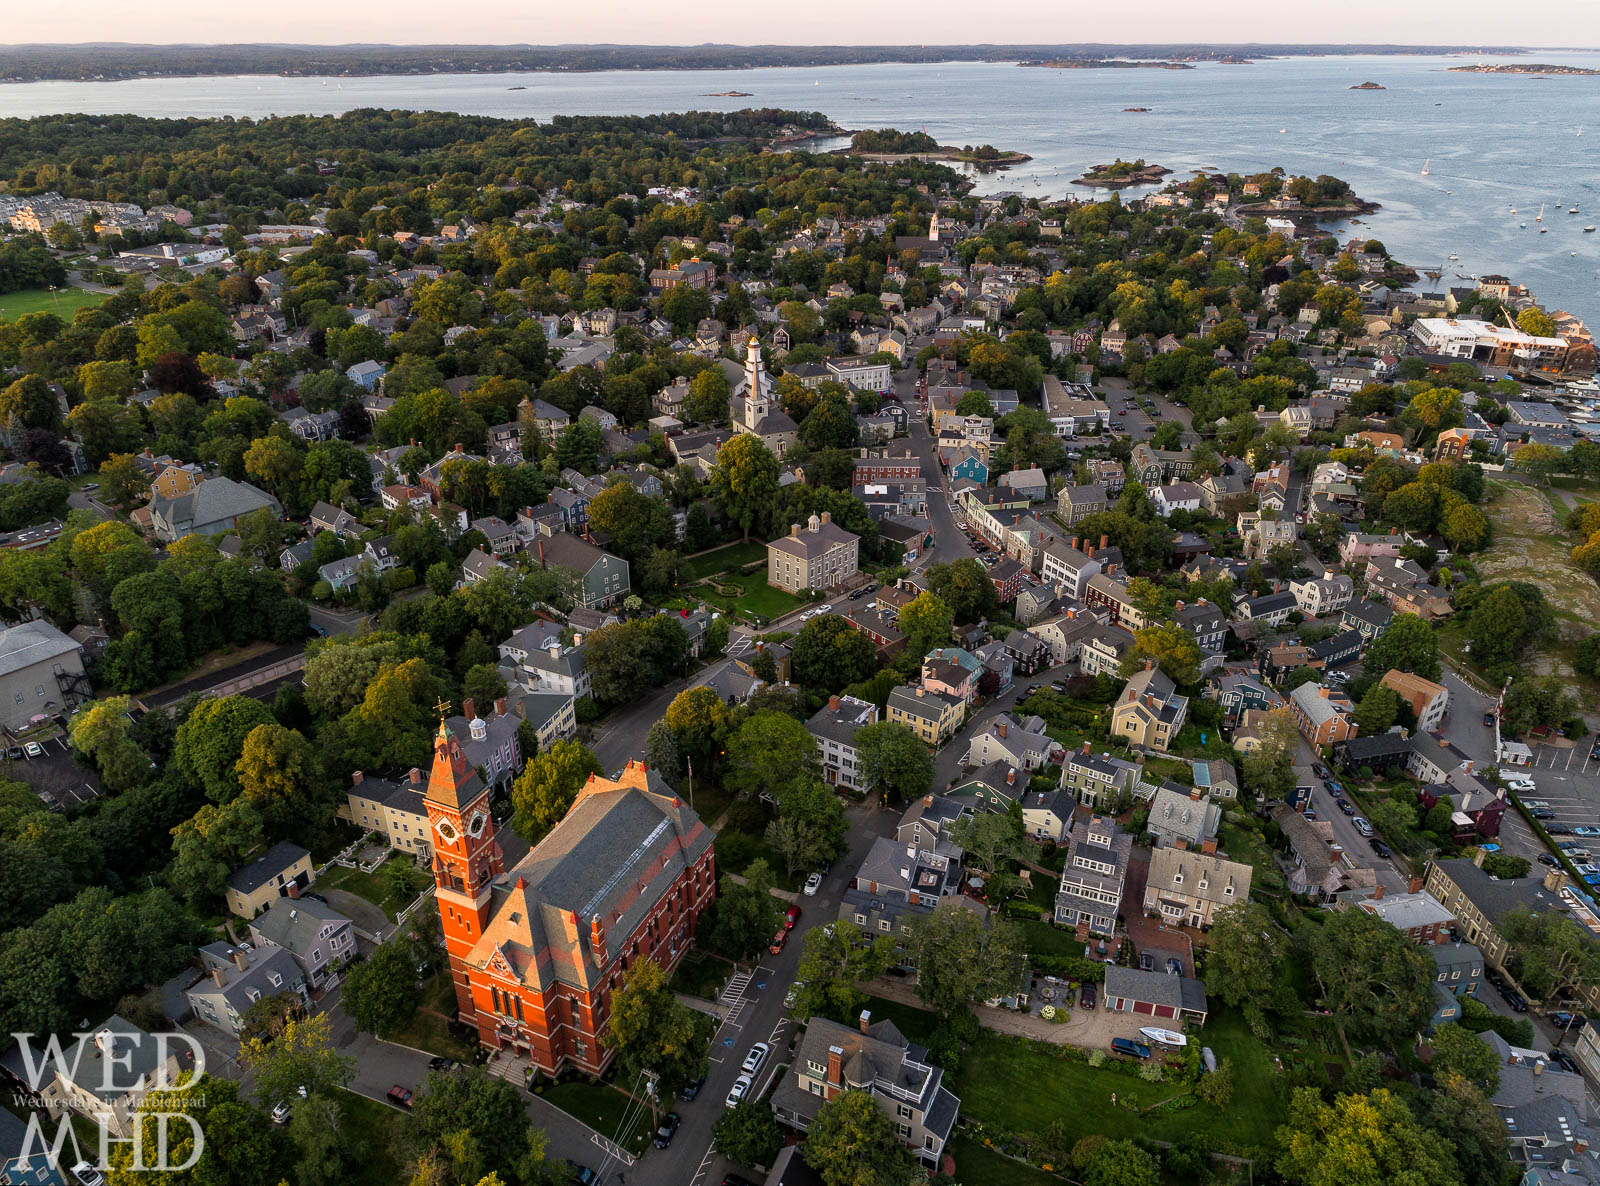 Evening light shines bright on Abbot Hall and historic downtown Marblehead in this aerial view of Old Town with historic homes, churches and shopping a stones throw from the ocean